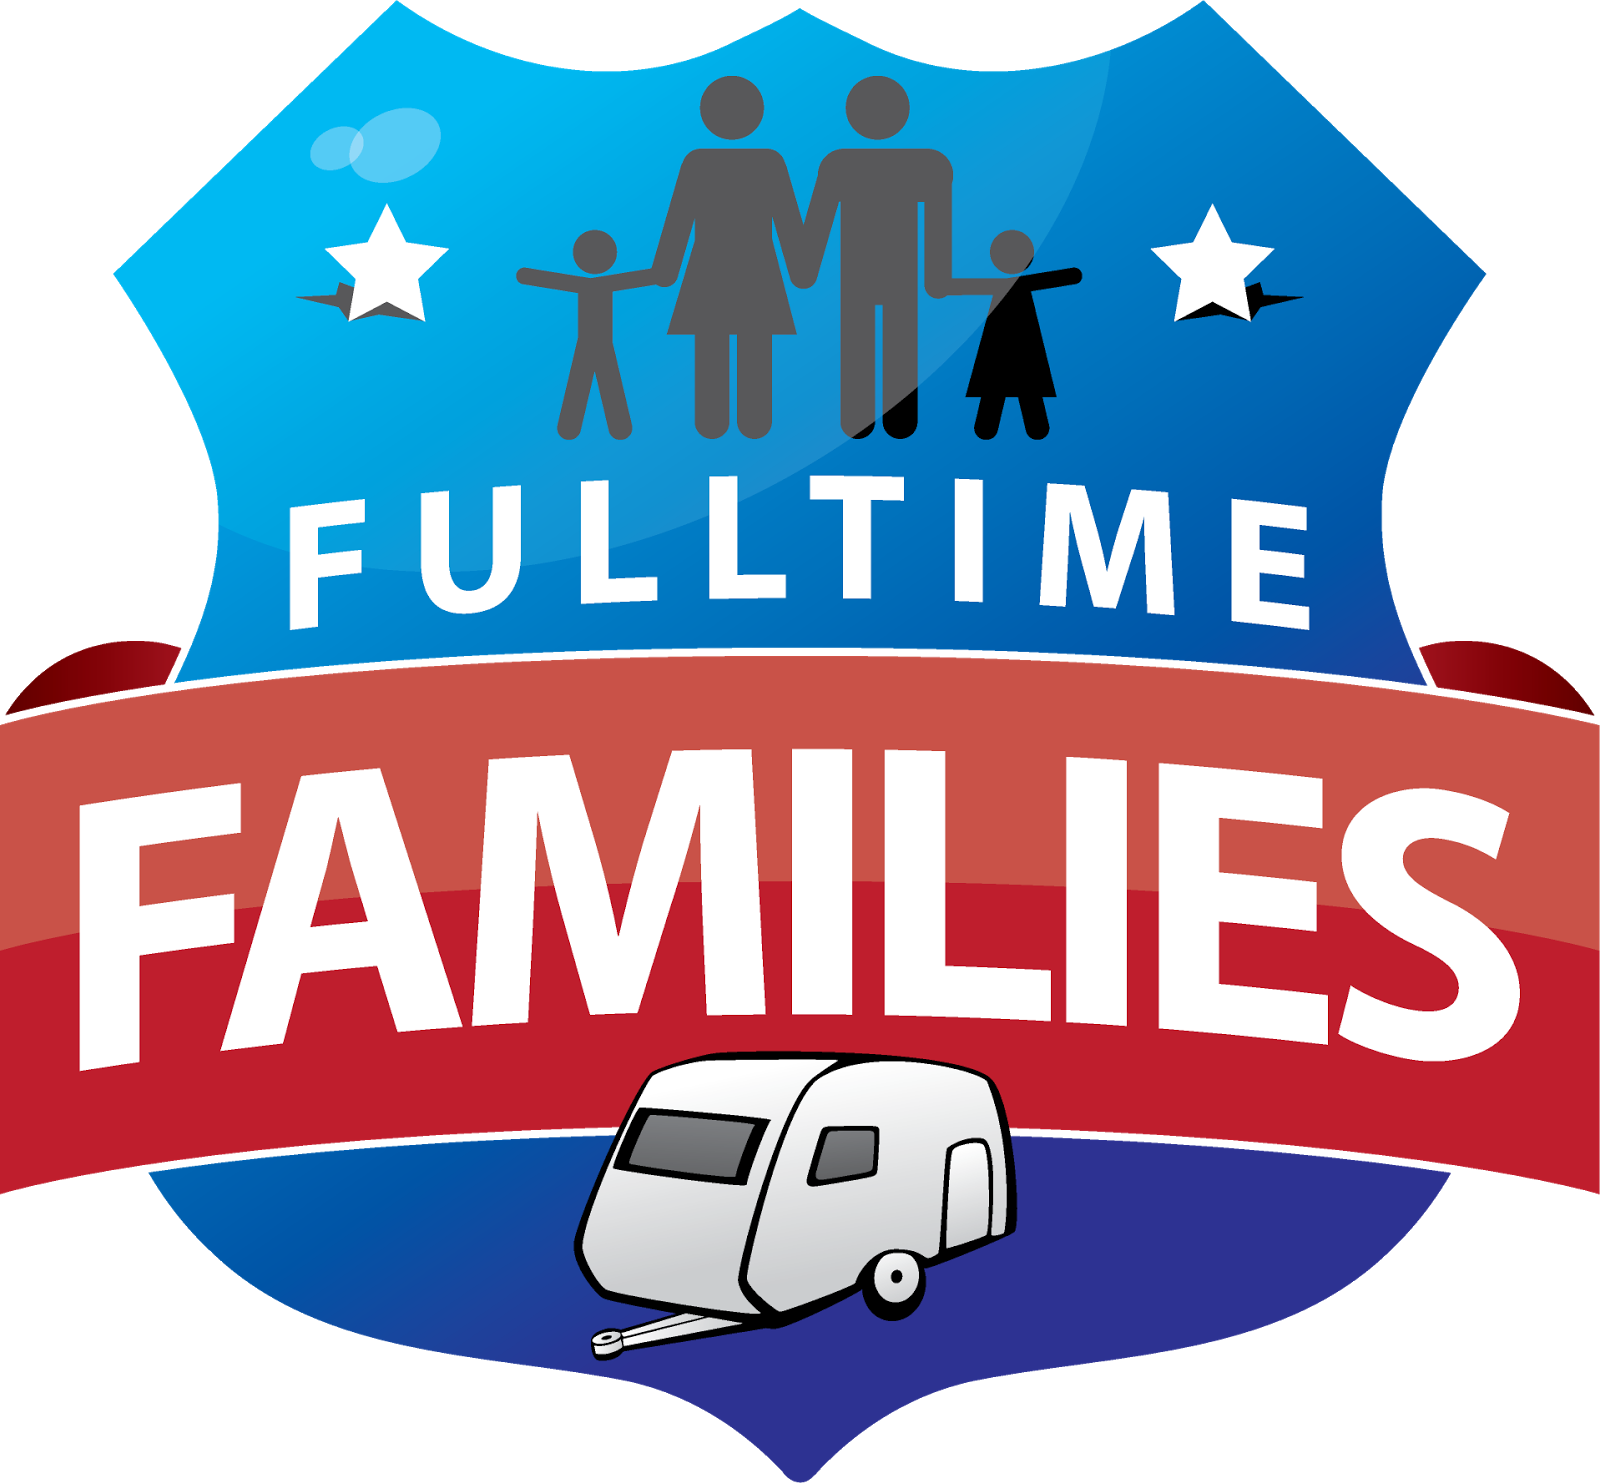 Resources for Full Time RVing Families